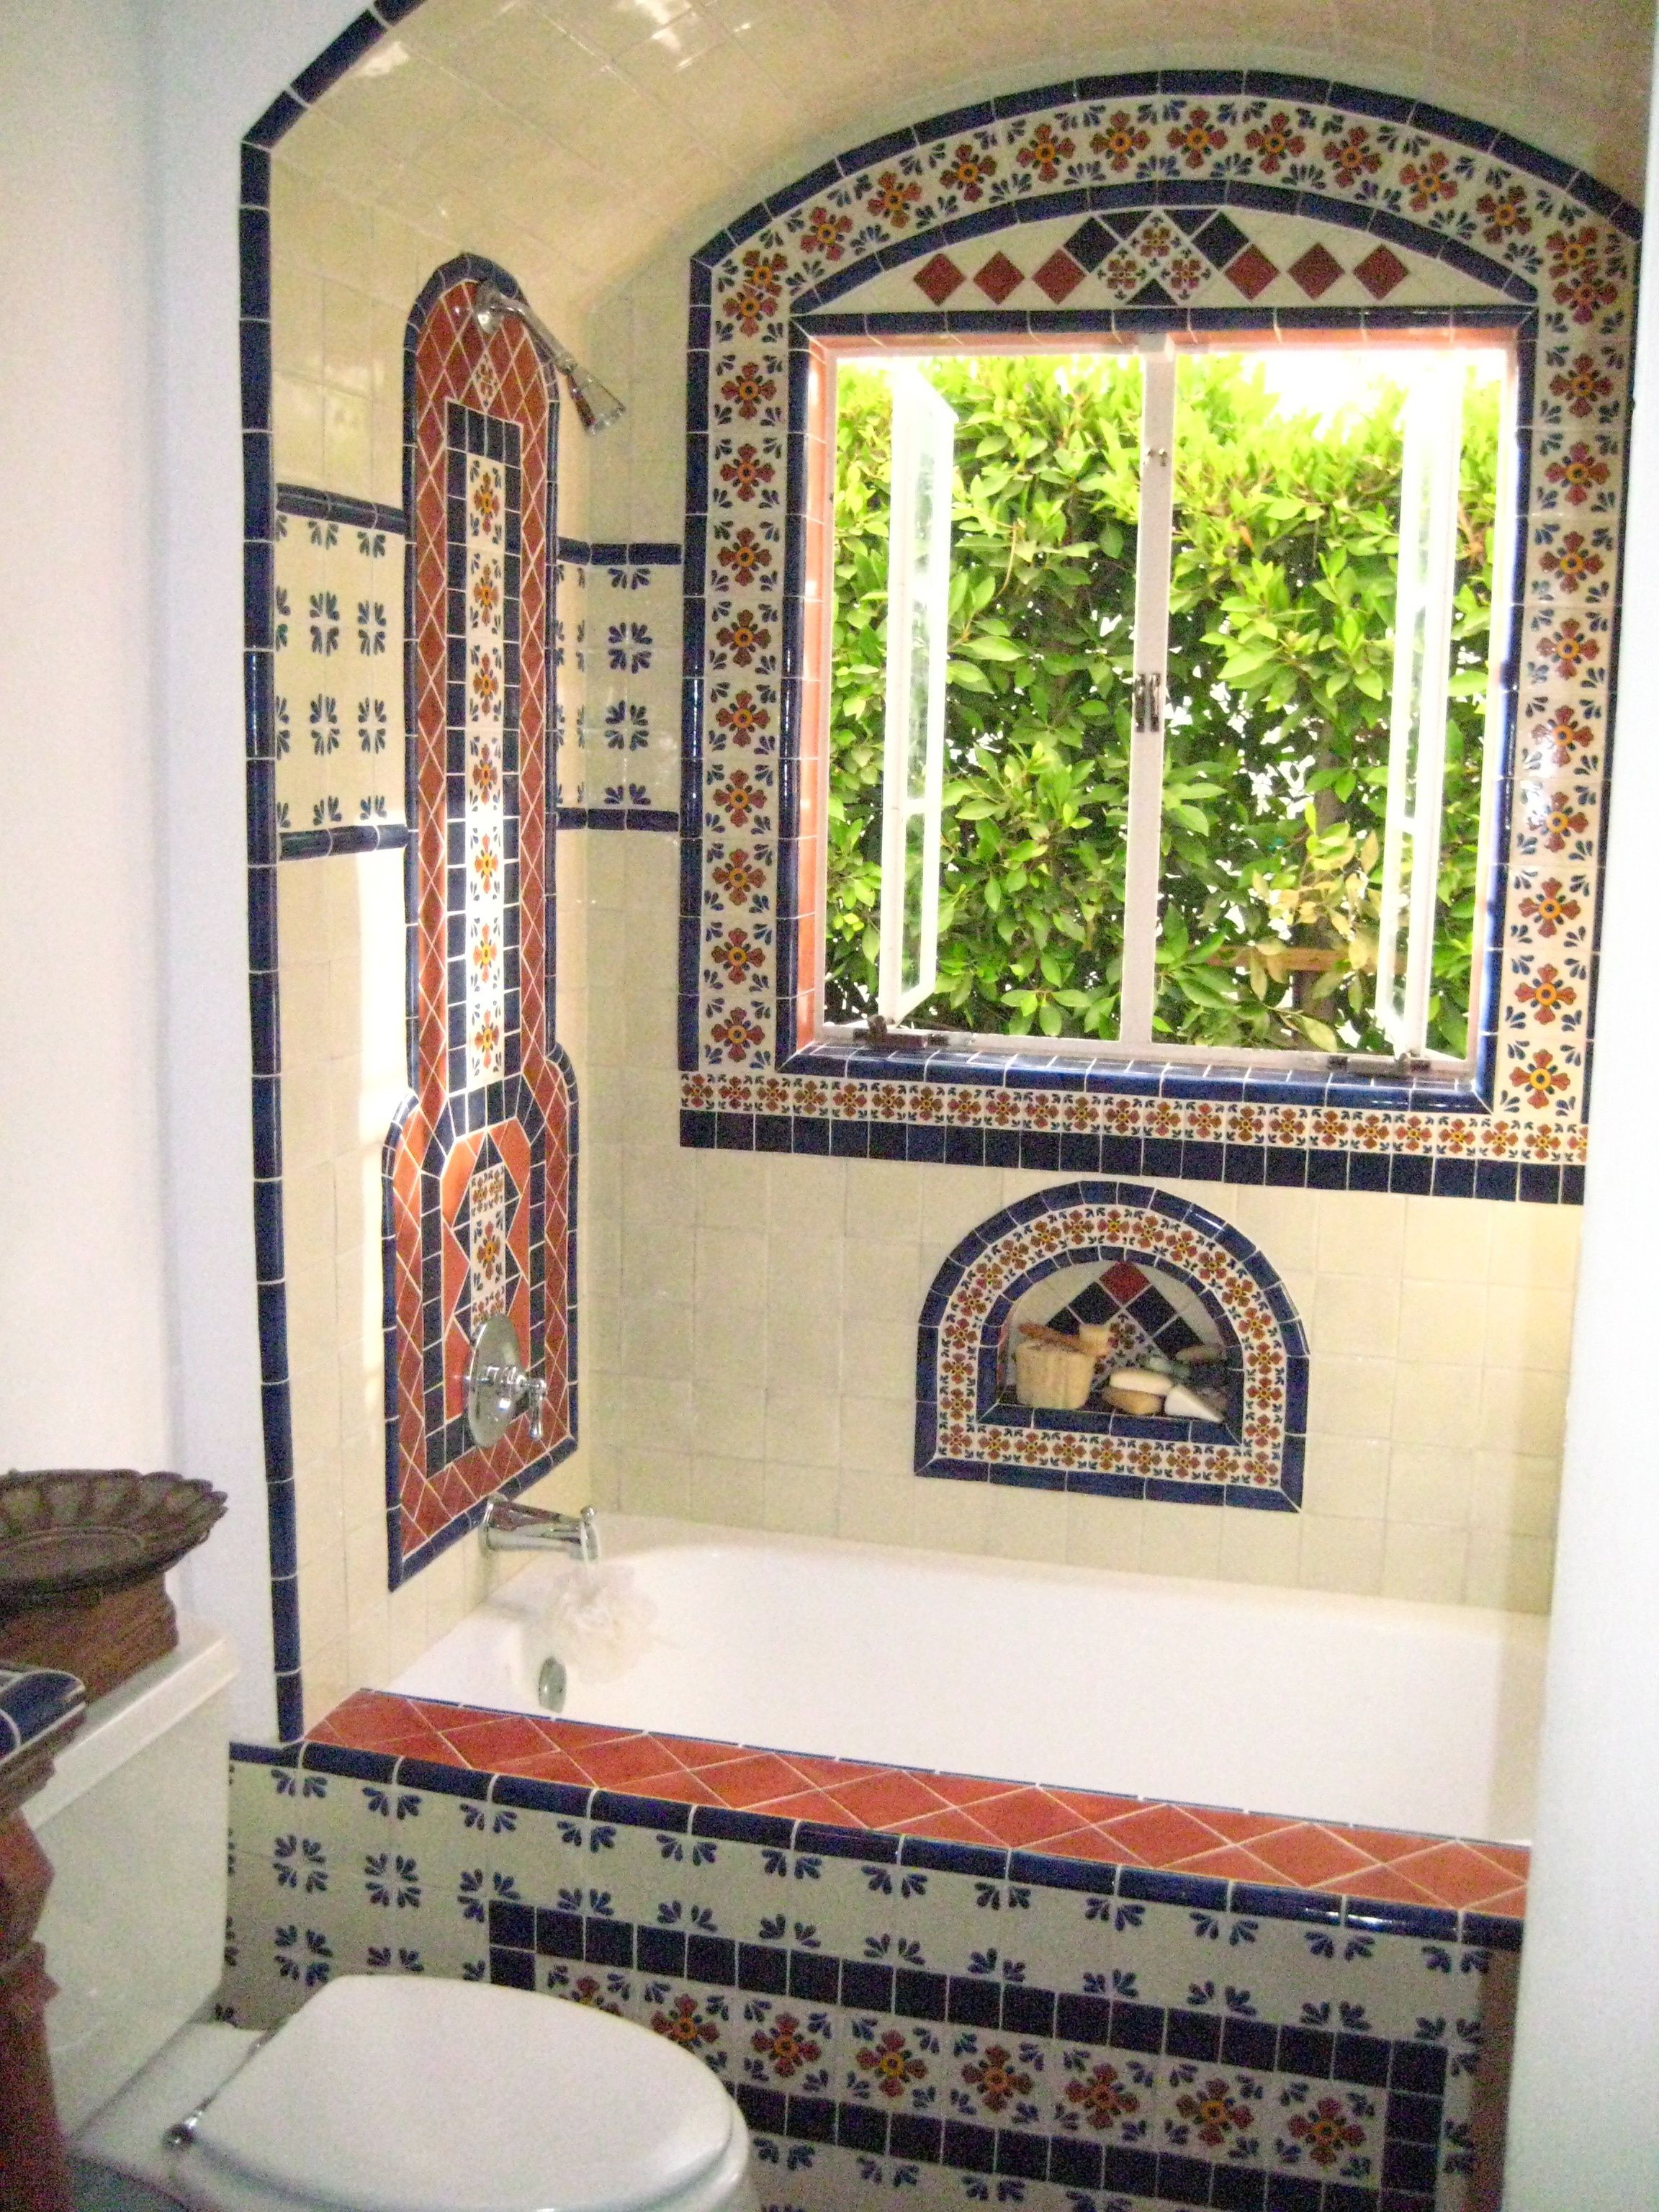 Bathroom using mexican tiles by kristiblackdesigns for the bathroom using mexican tiles by kristiblackdesigns dailygadgetfo Image collections